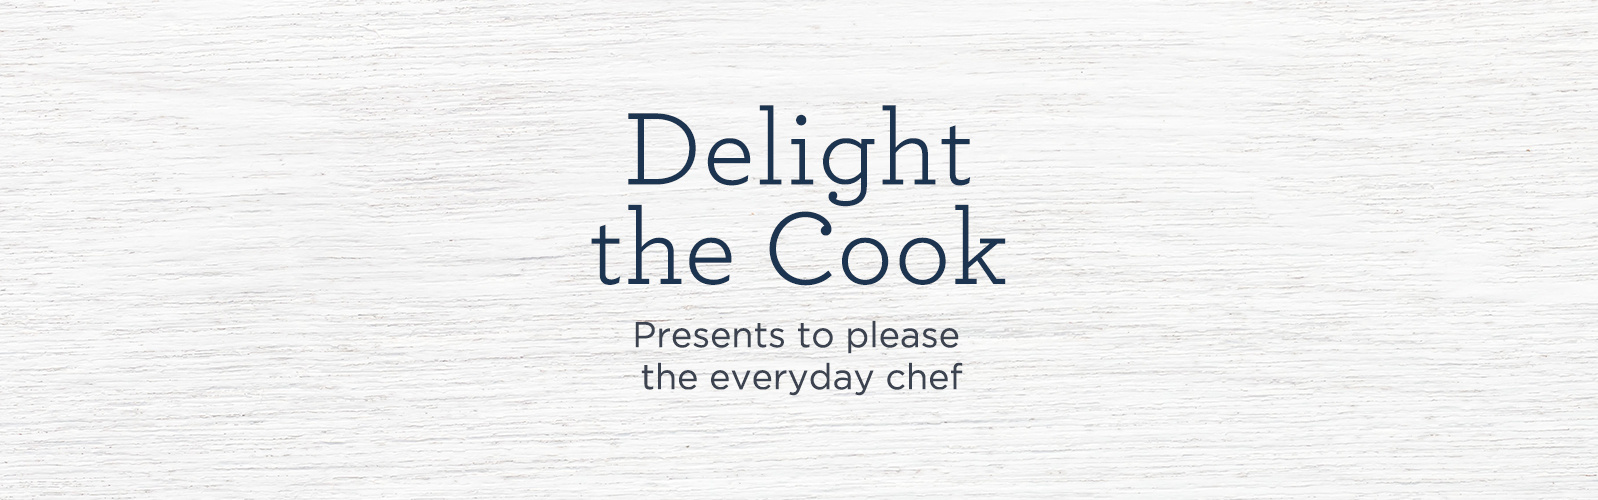 Delight the Cook - Presents to please the everyday chef